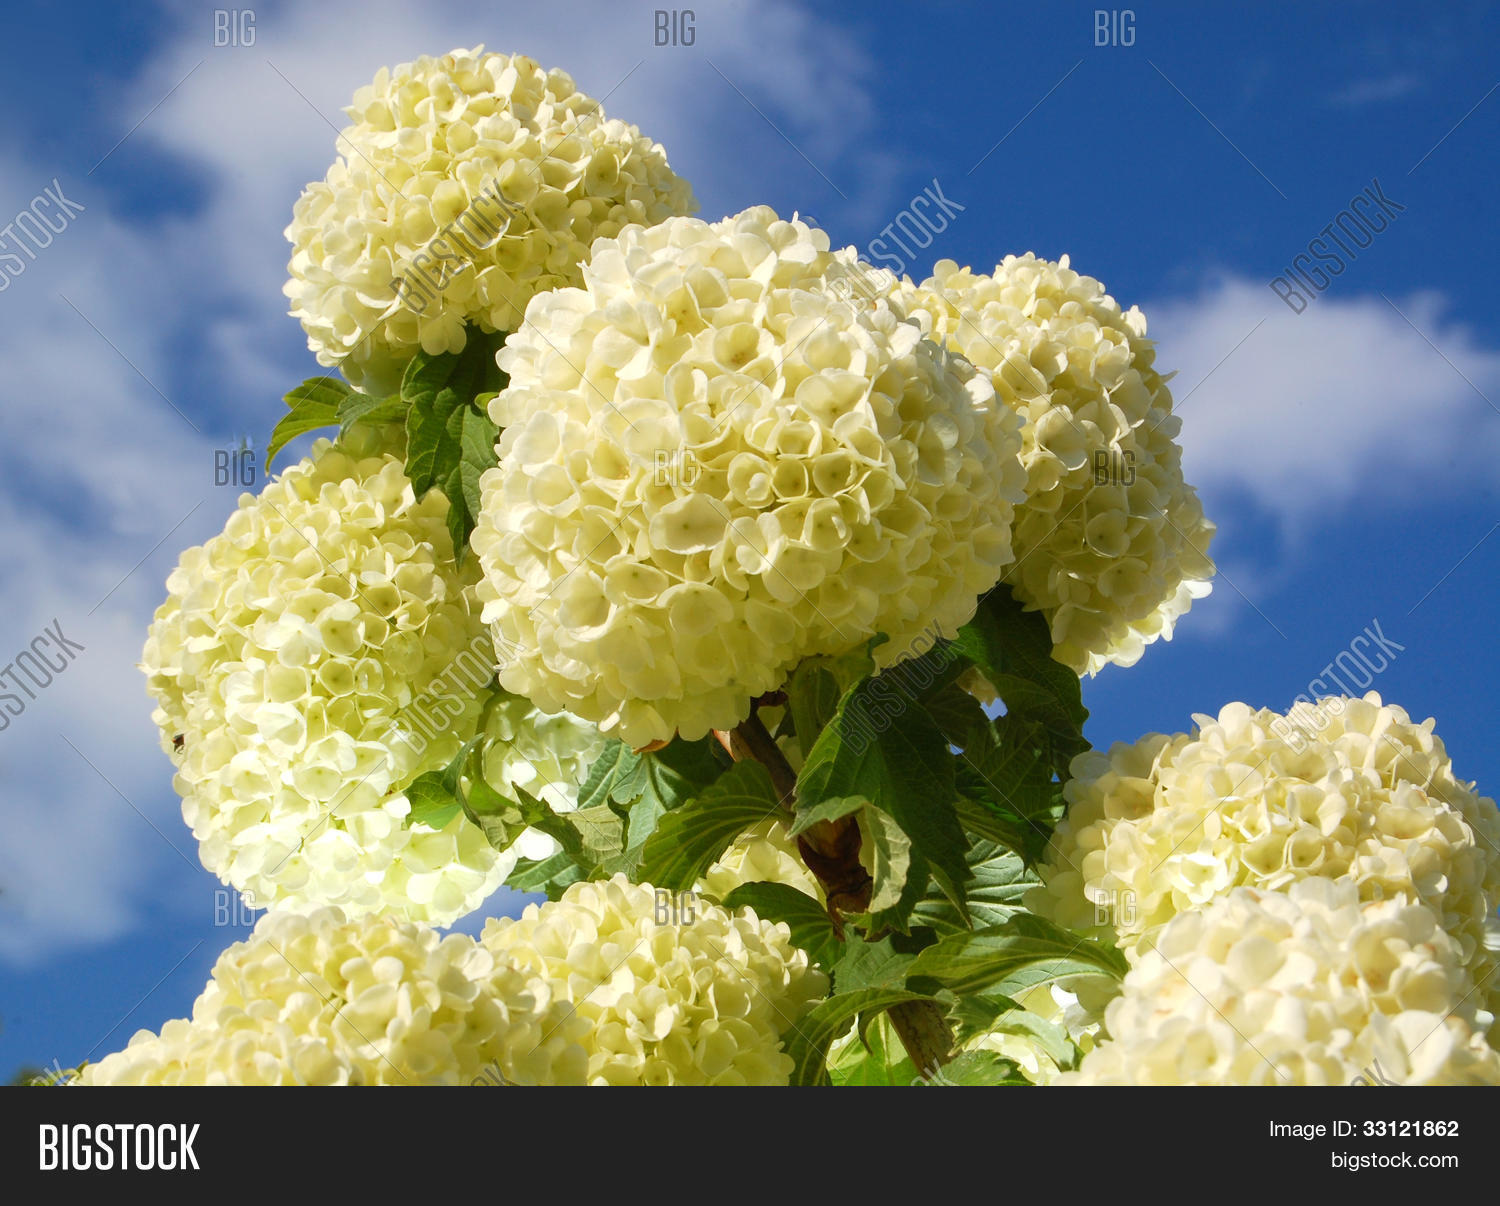 White Ball Flowers Image Photo Free Trial Bigstock